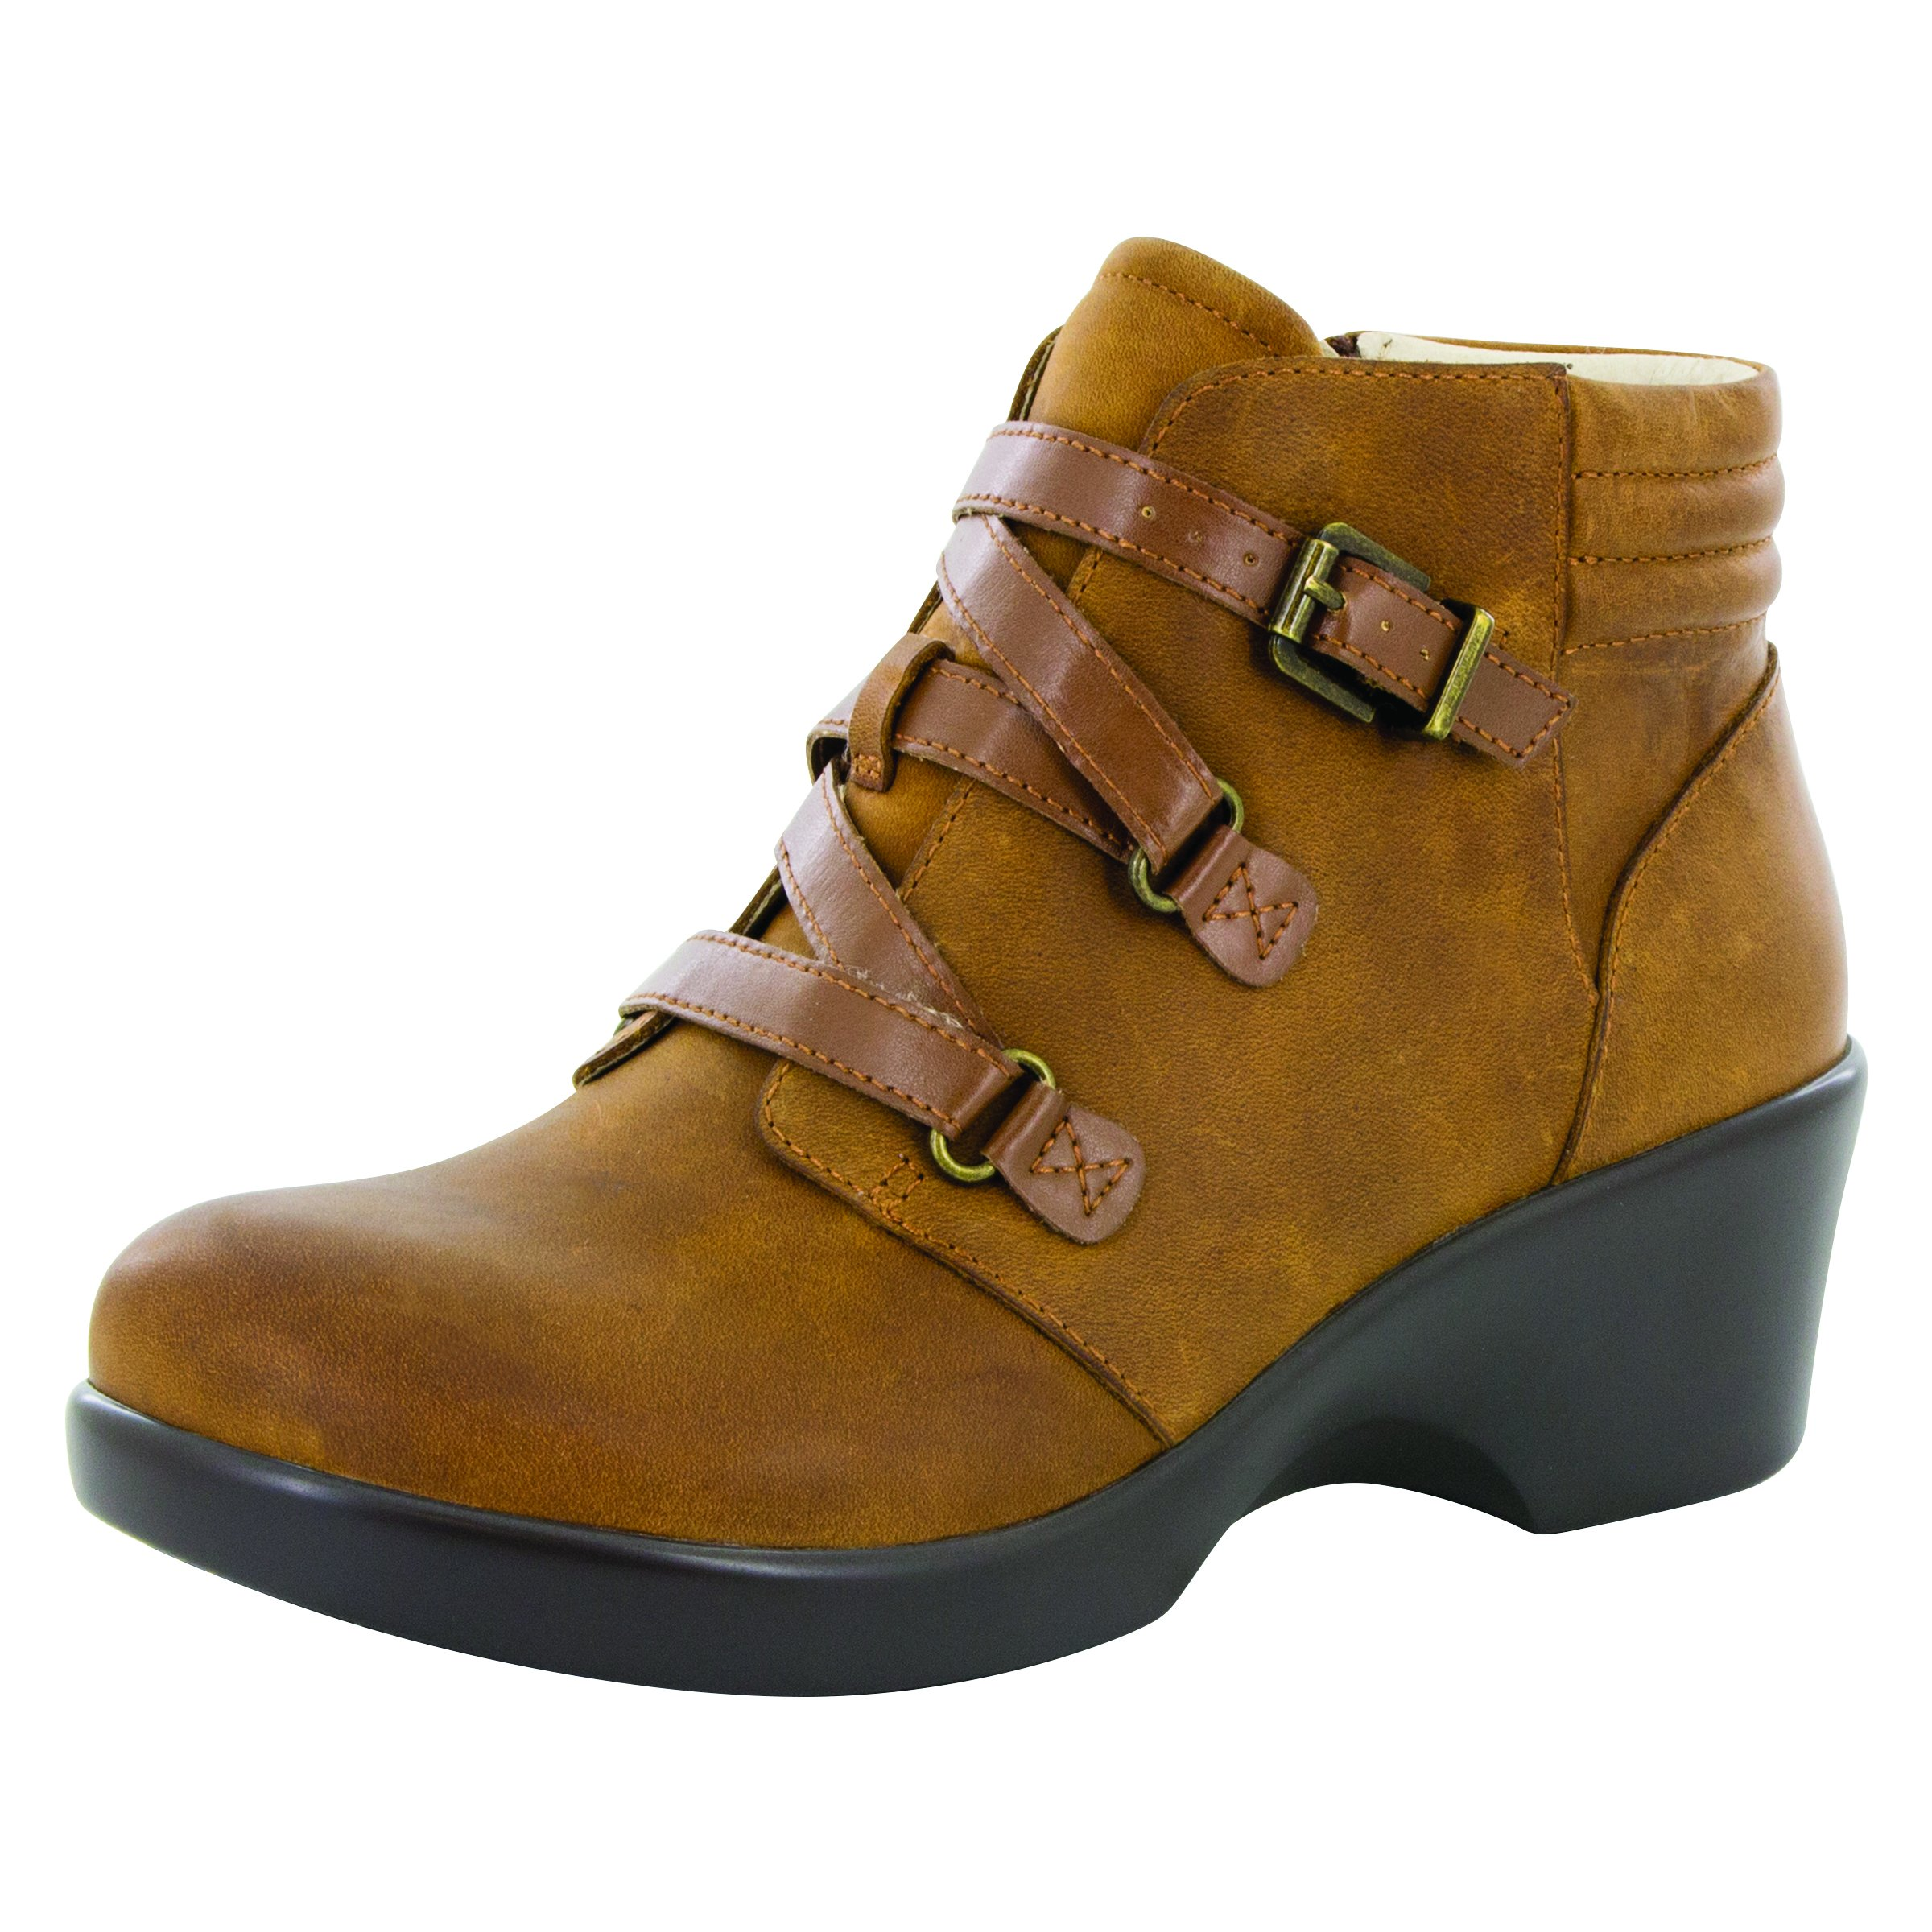 Alegria Womens Indi Ankle Boot Walnut Size 37 EU (7-7.5 M US Women) by Alegria (Image #1)